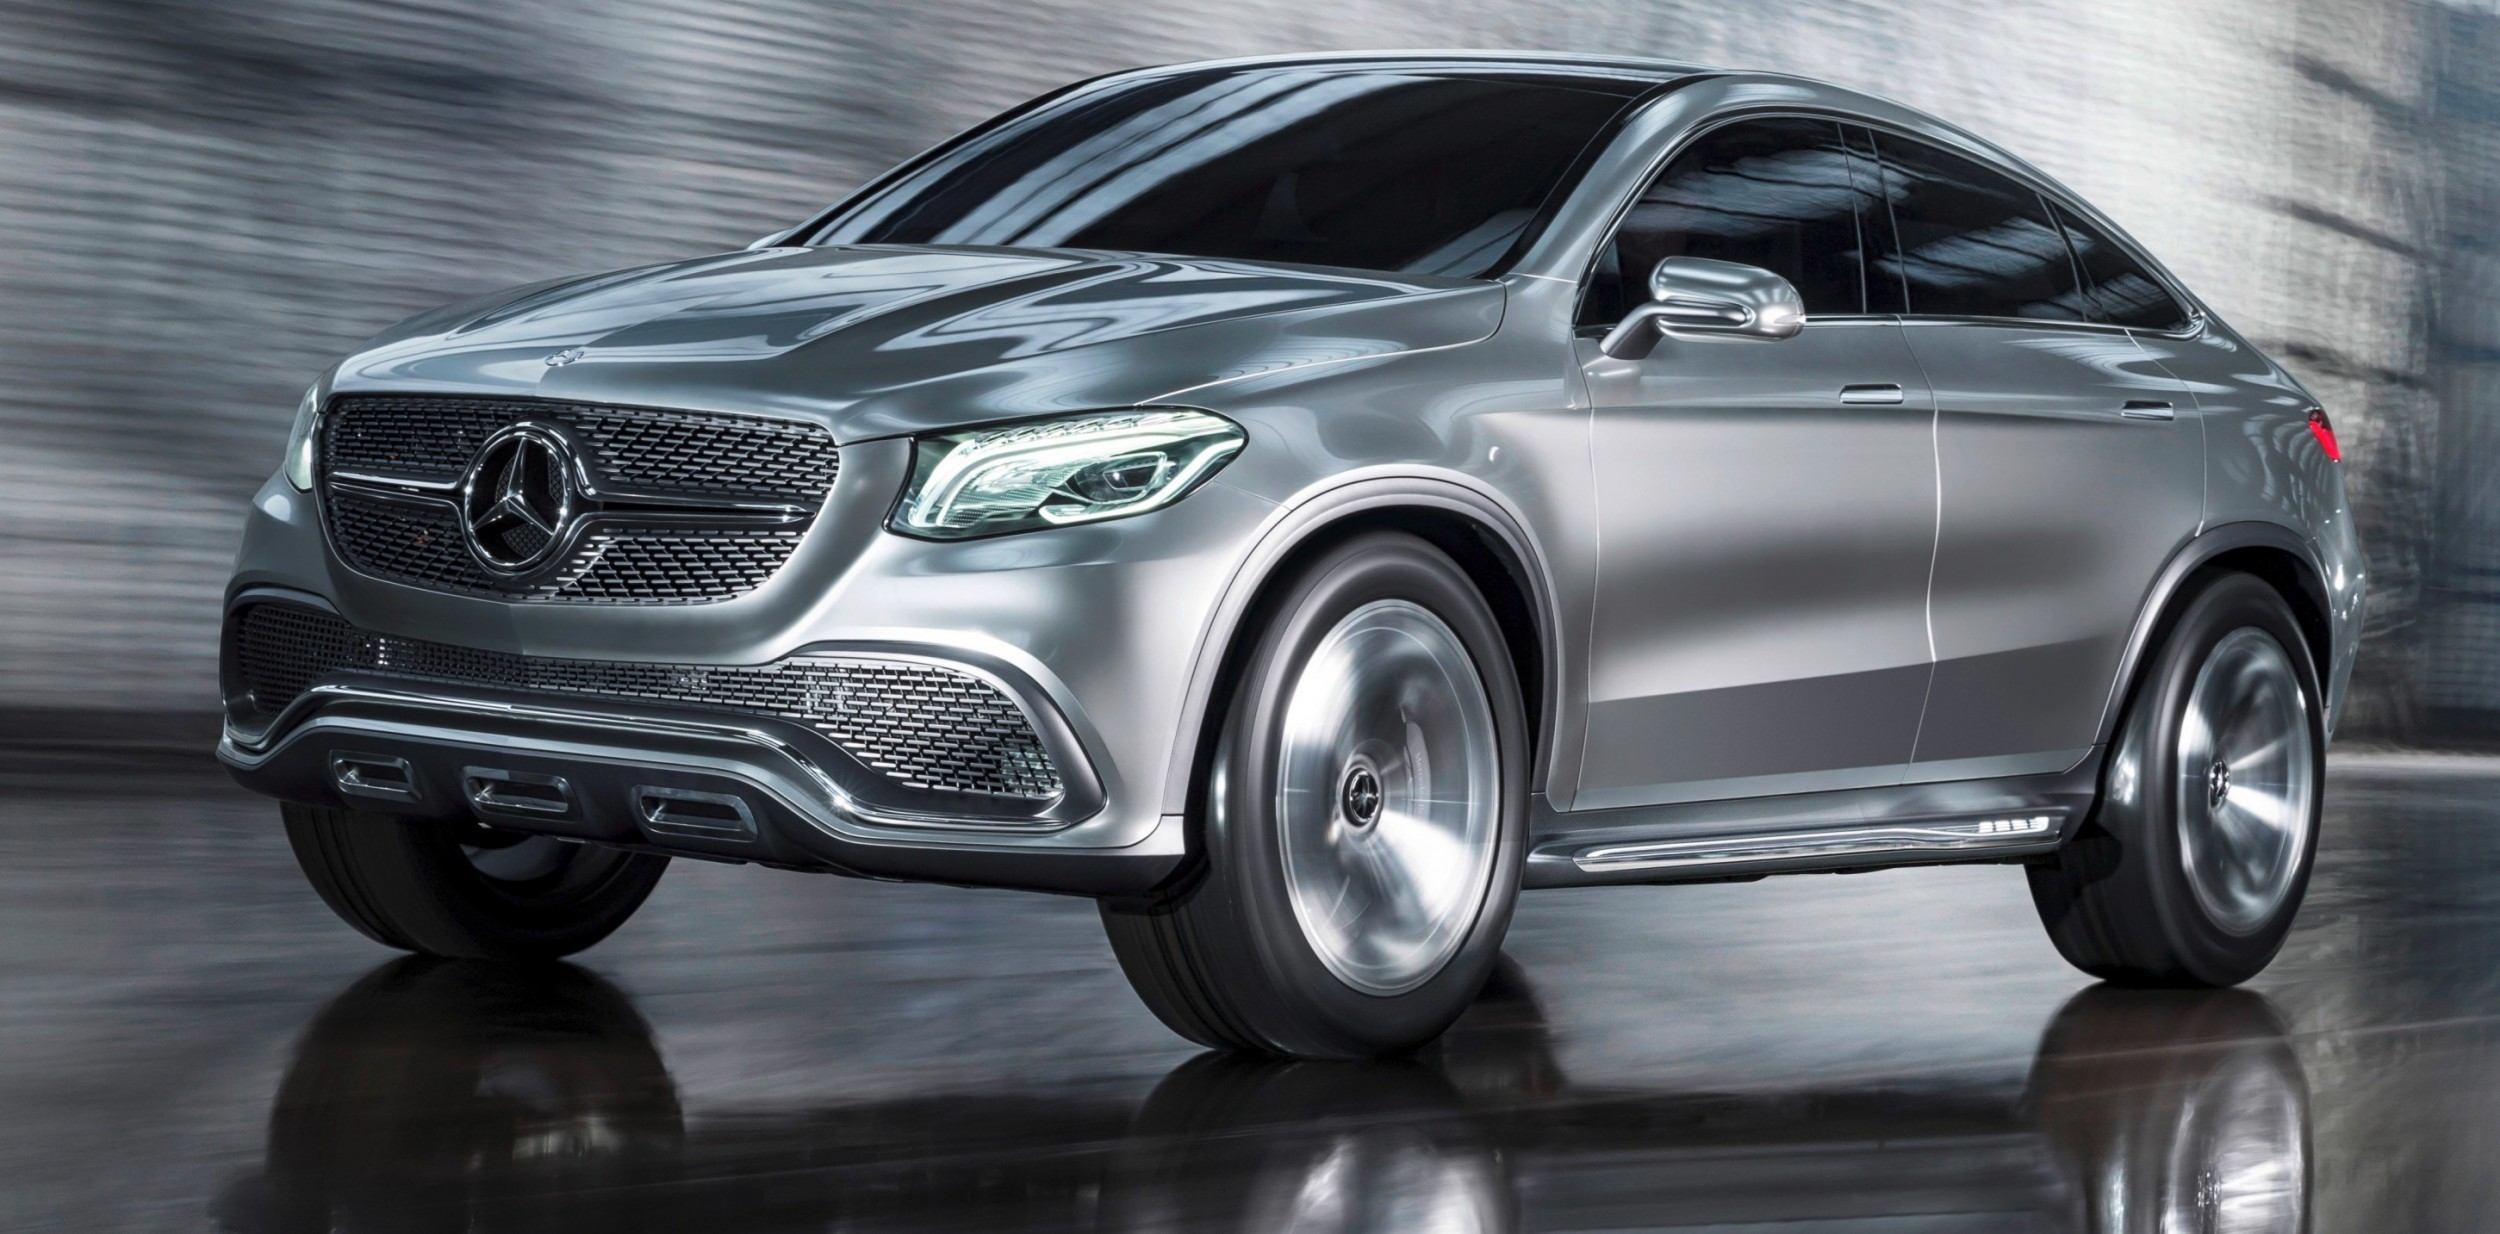 Mercedes benz concept coupe suv beijing 2014 sets new for Mercedes benz concept suv